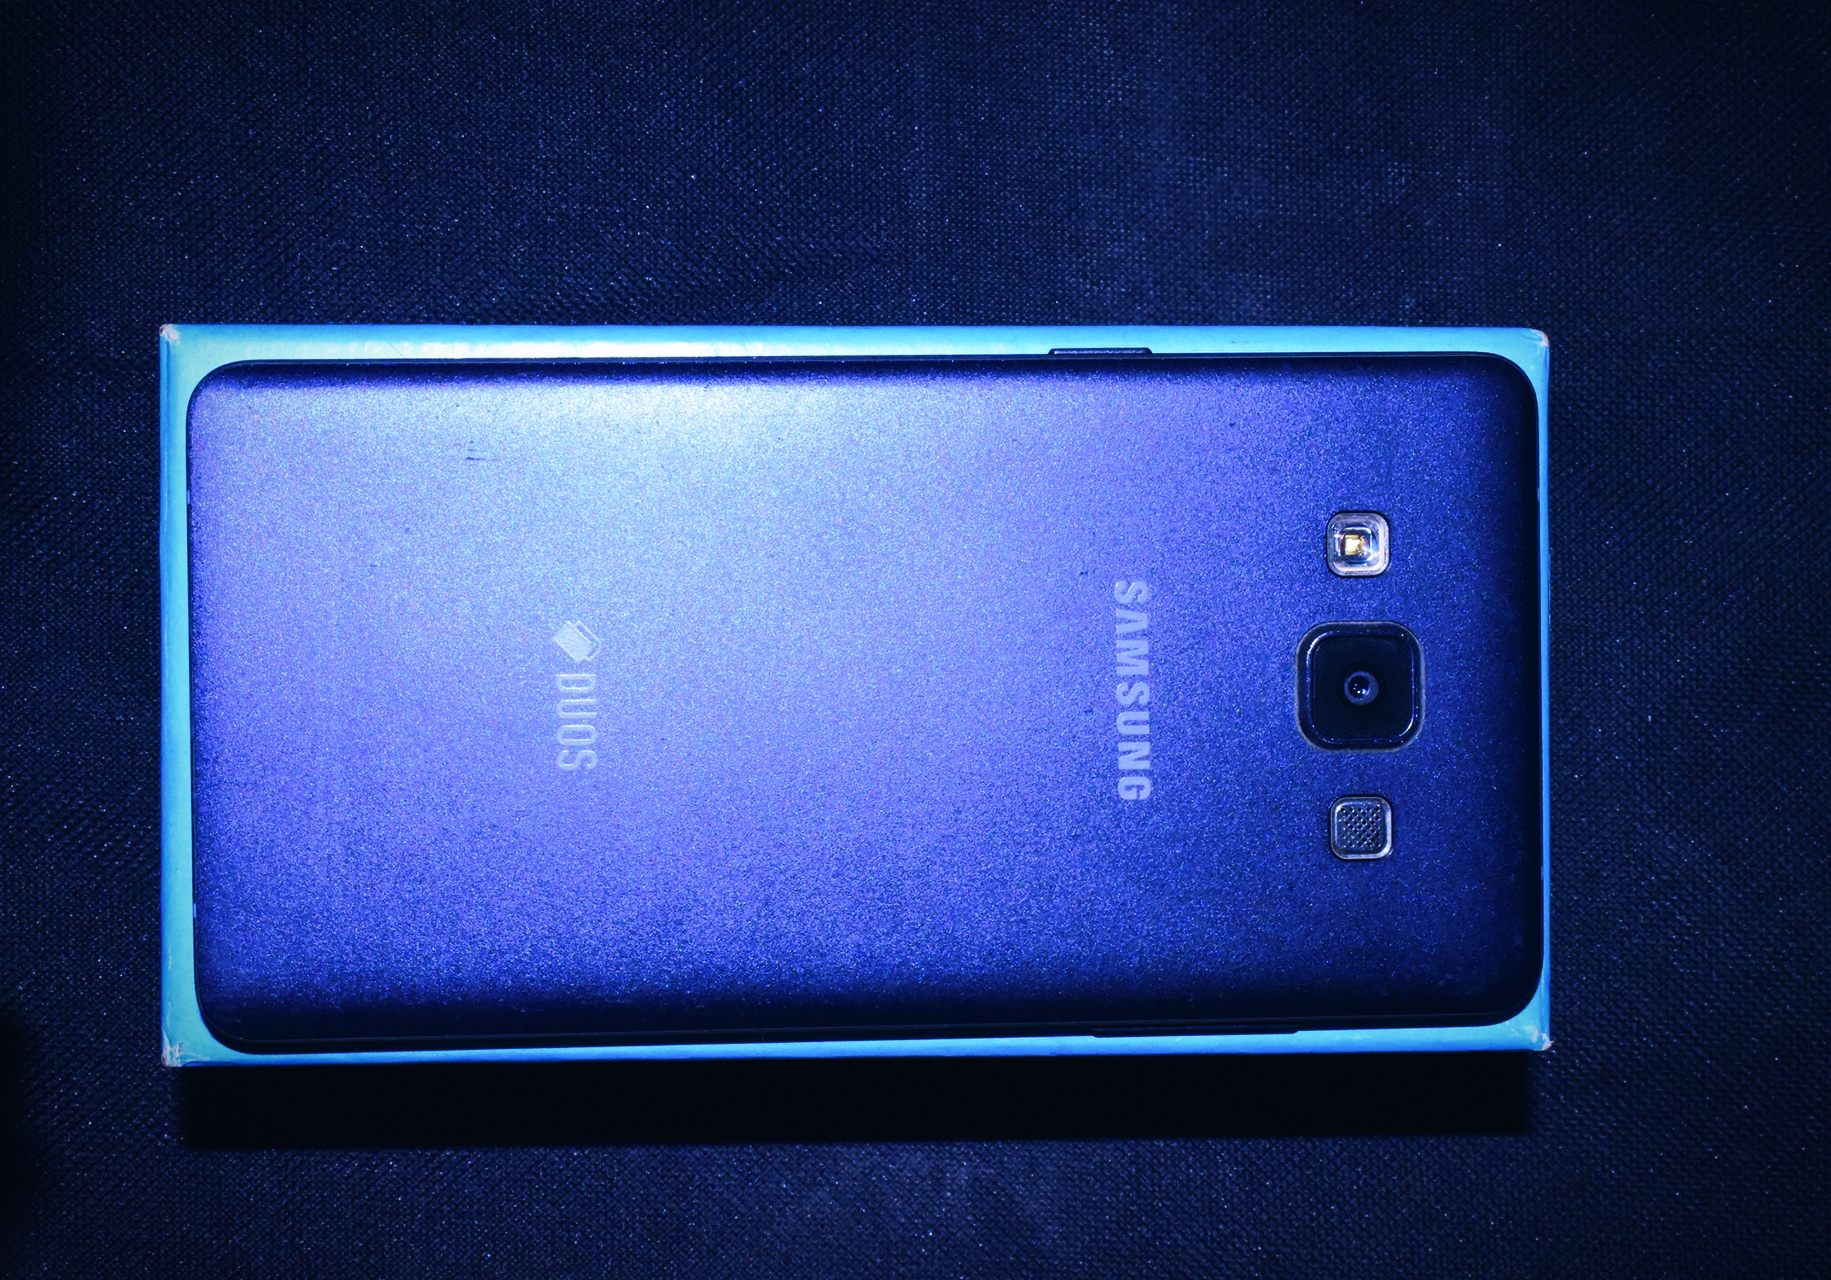 Samsung A5 2015 (With Complete Box) - photo 3